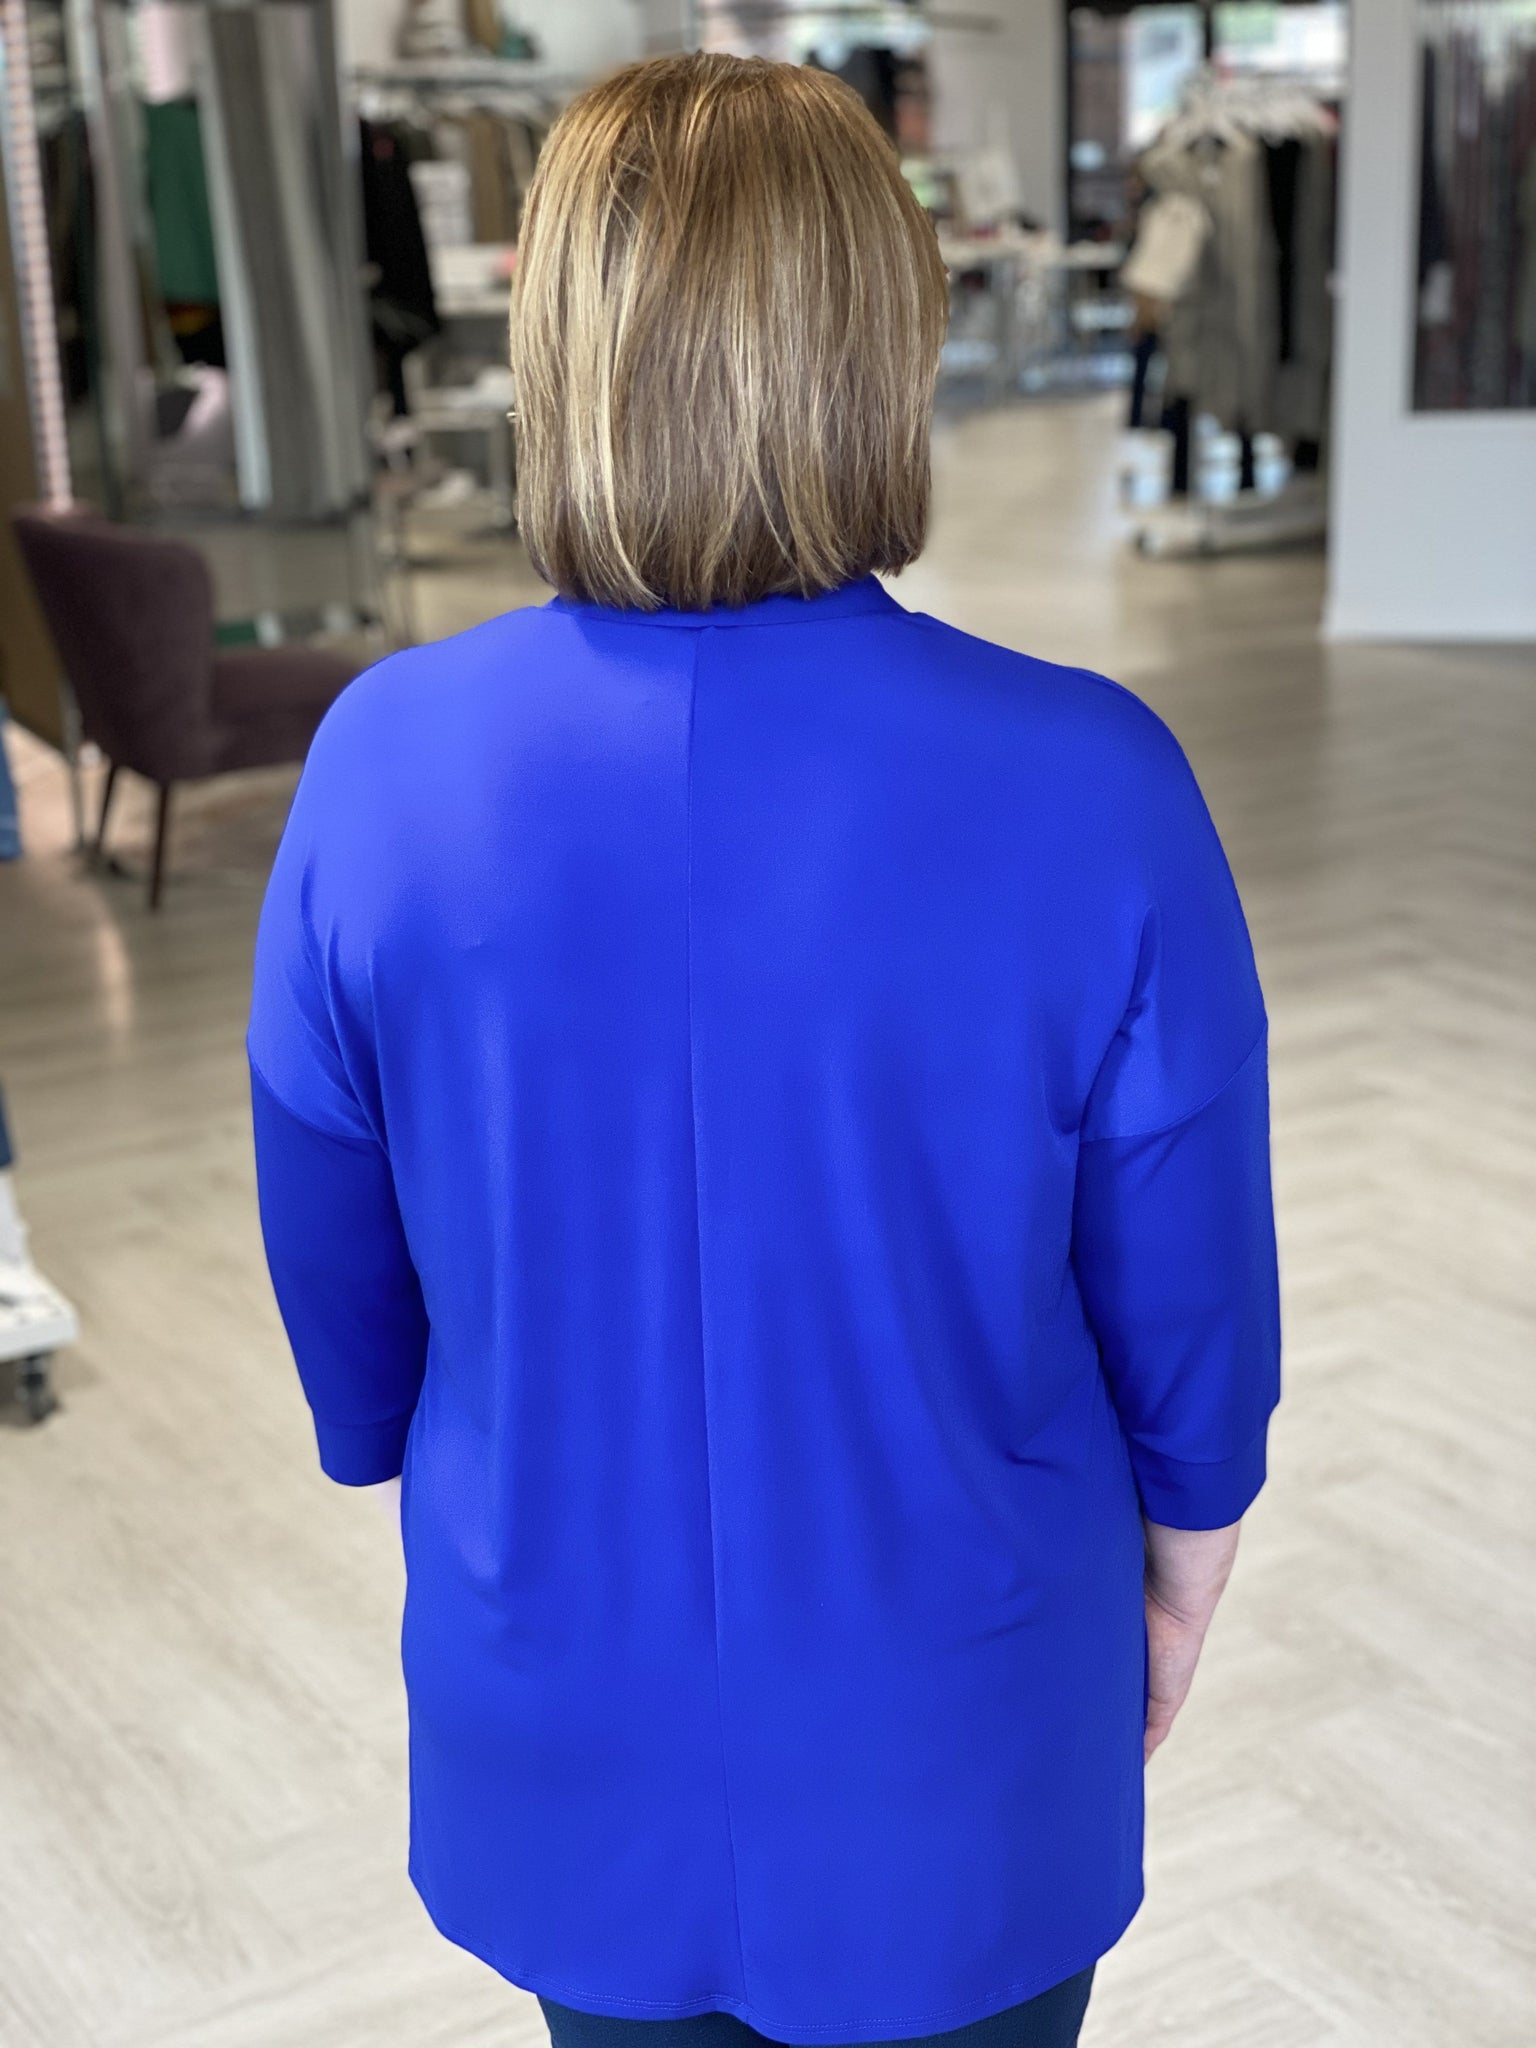 SOLID BREEZY 3/4 LENGTH DOLMAN BLOUSE IN ROYAL BLUE